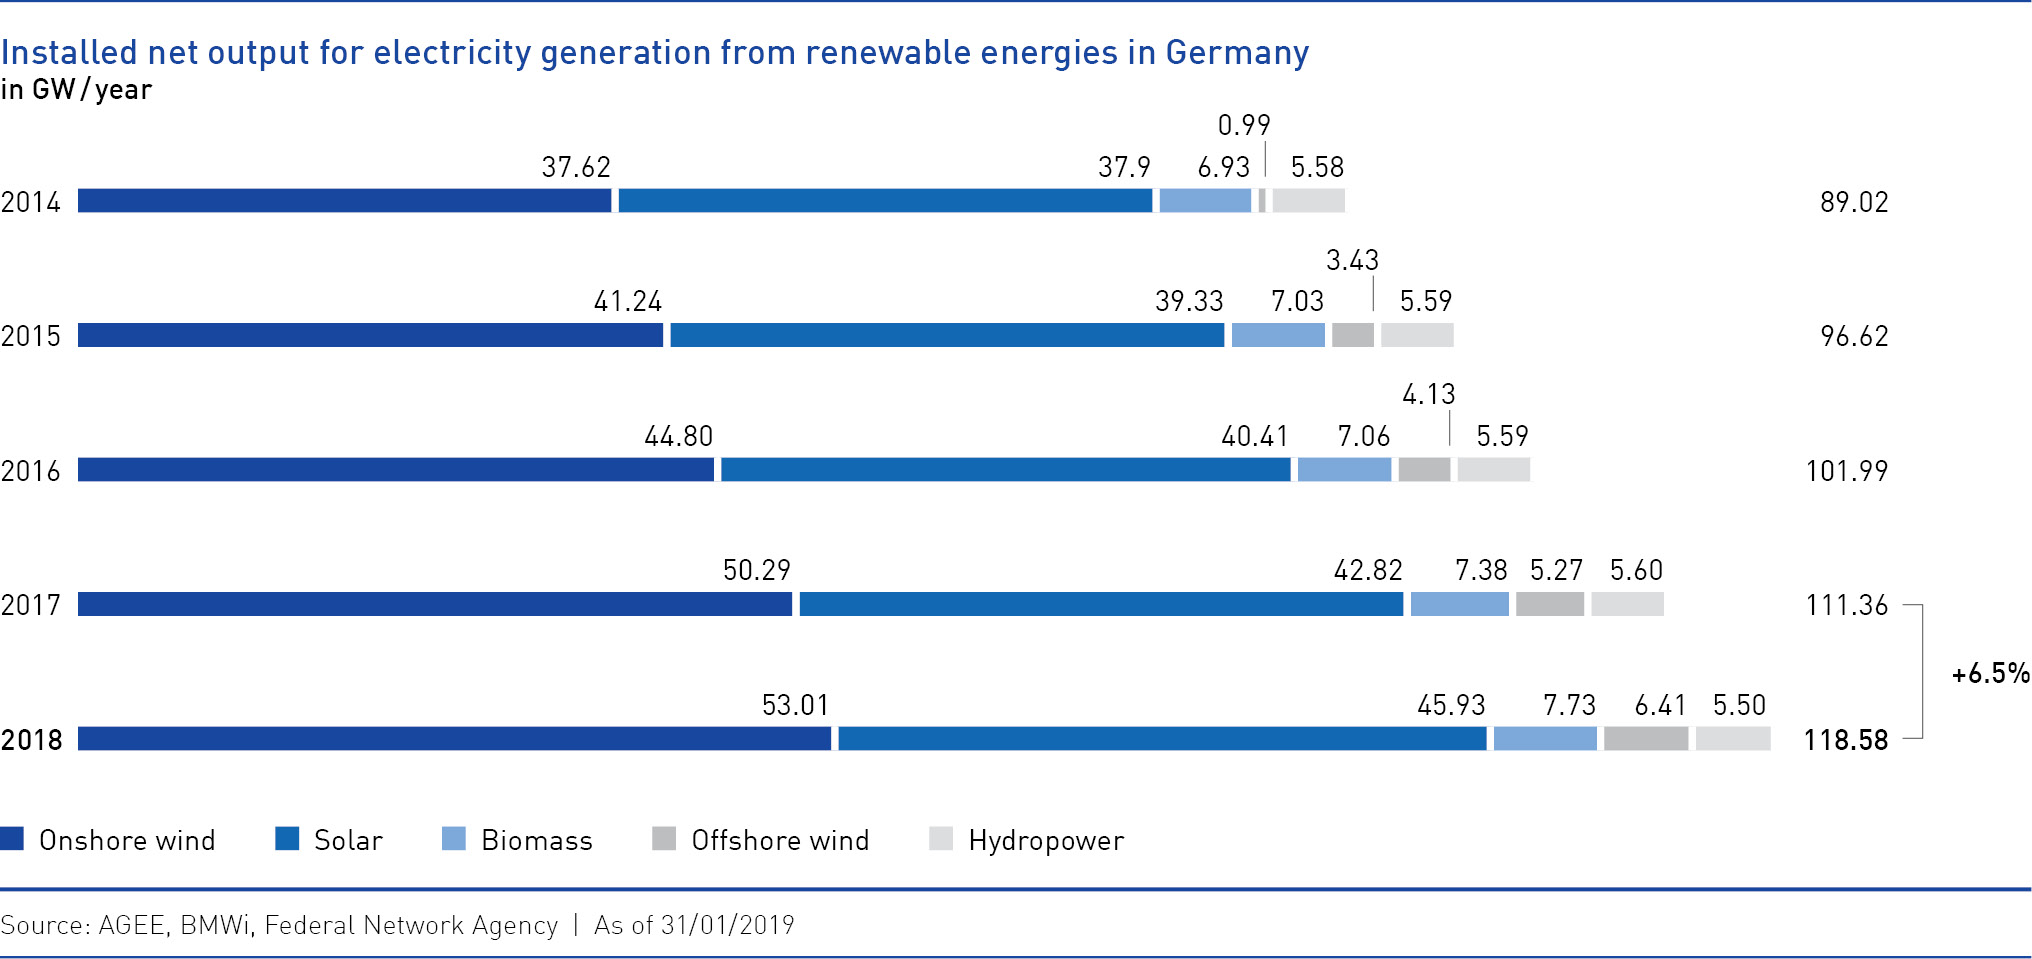 Installed net output for electricity generation from renewable energies in Germany